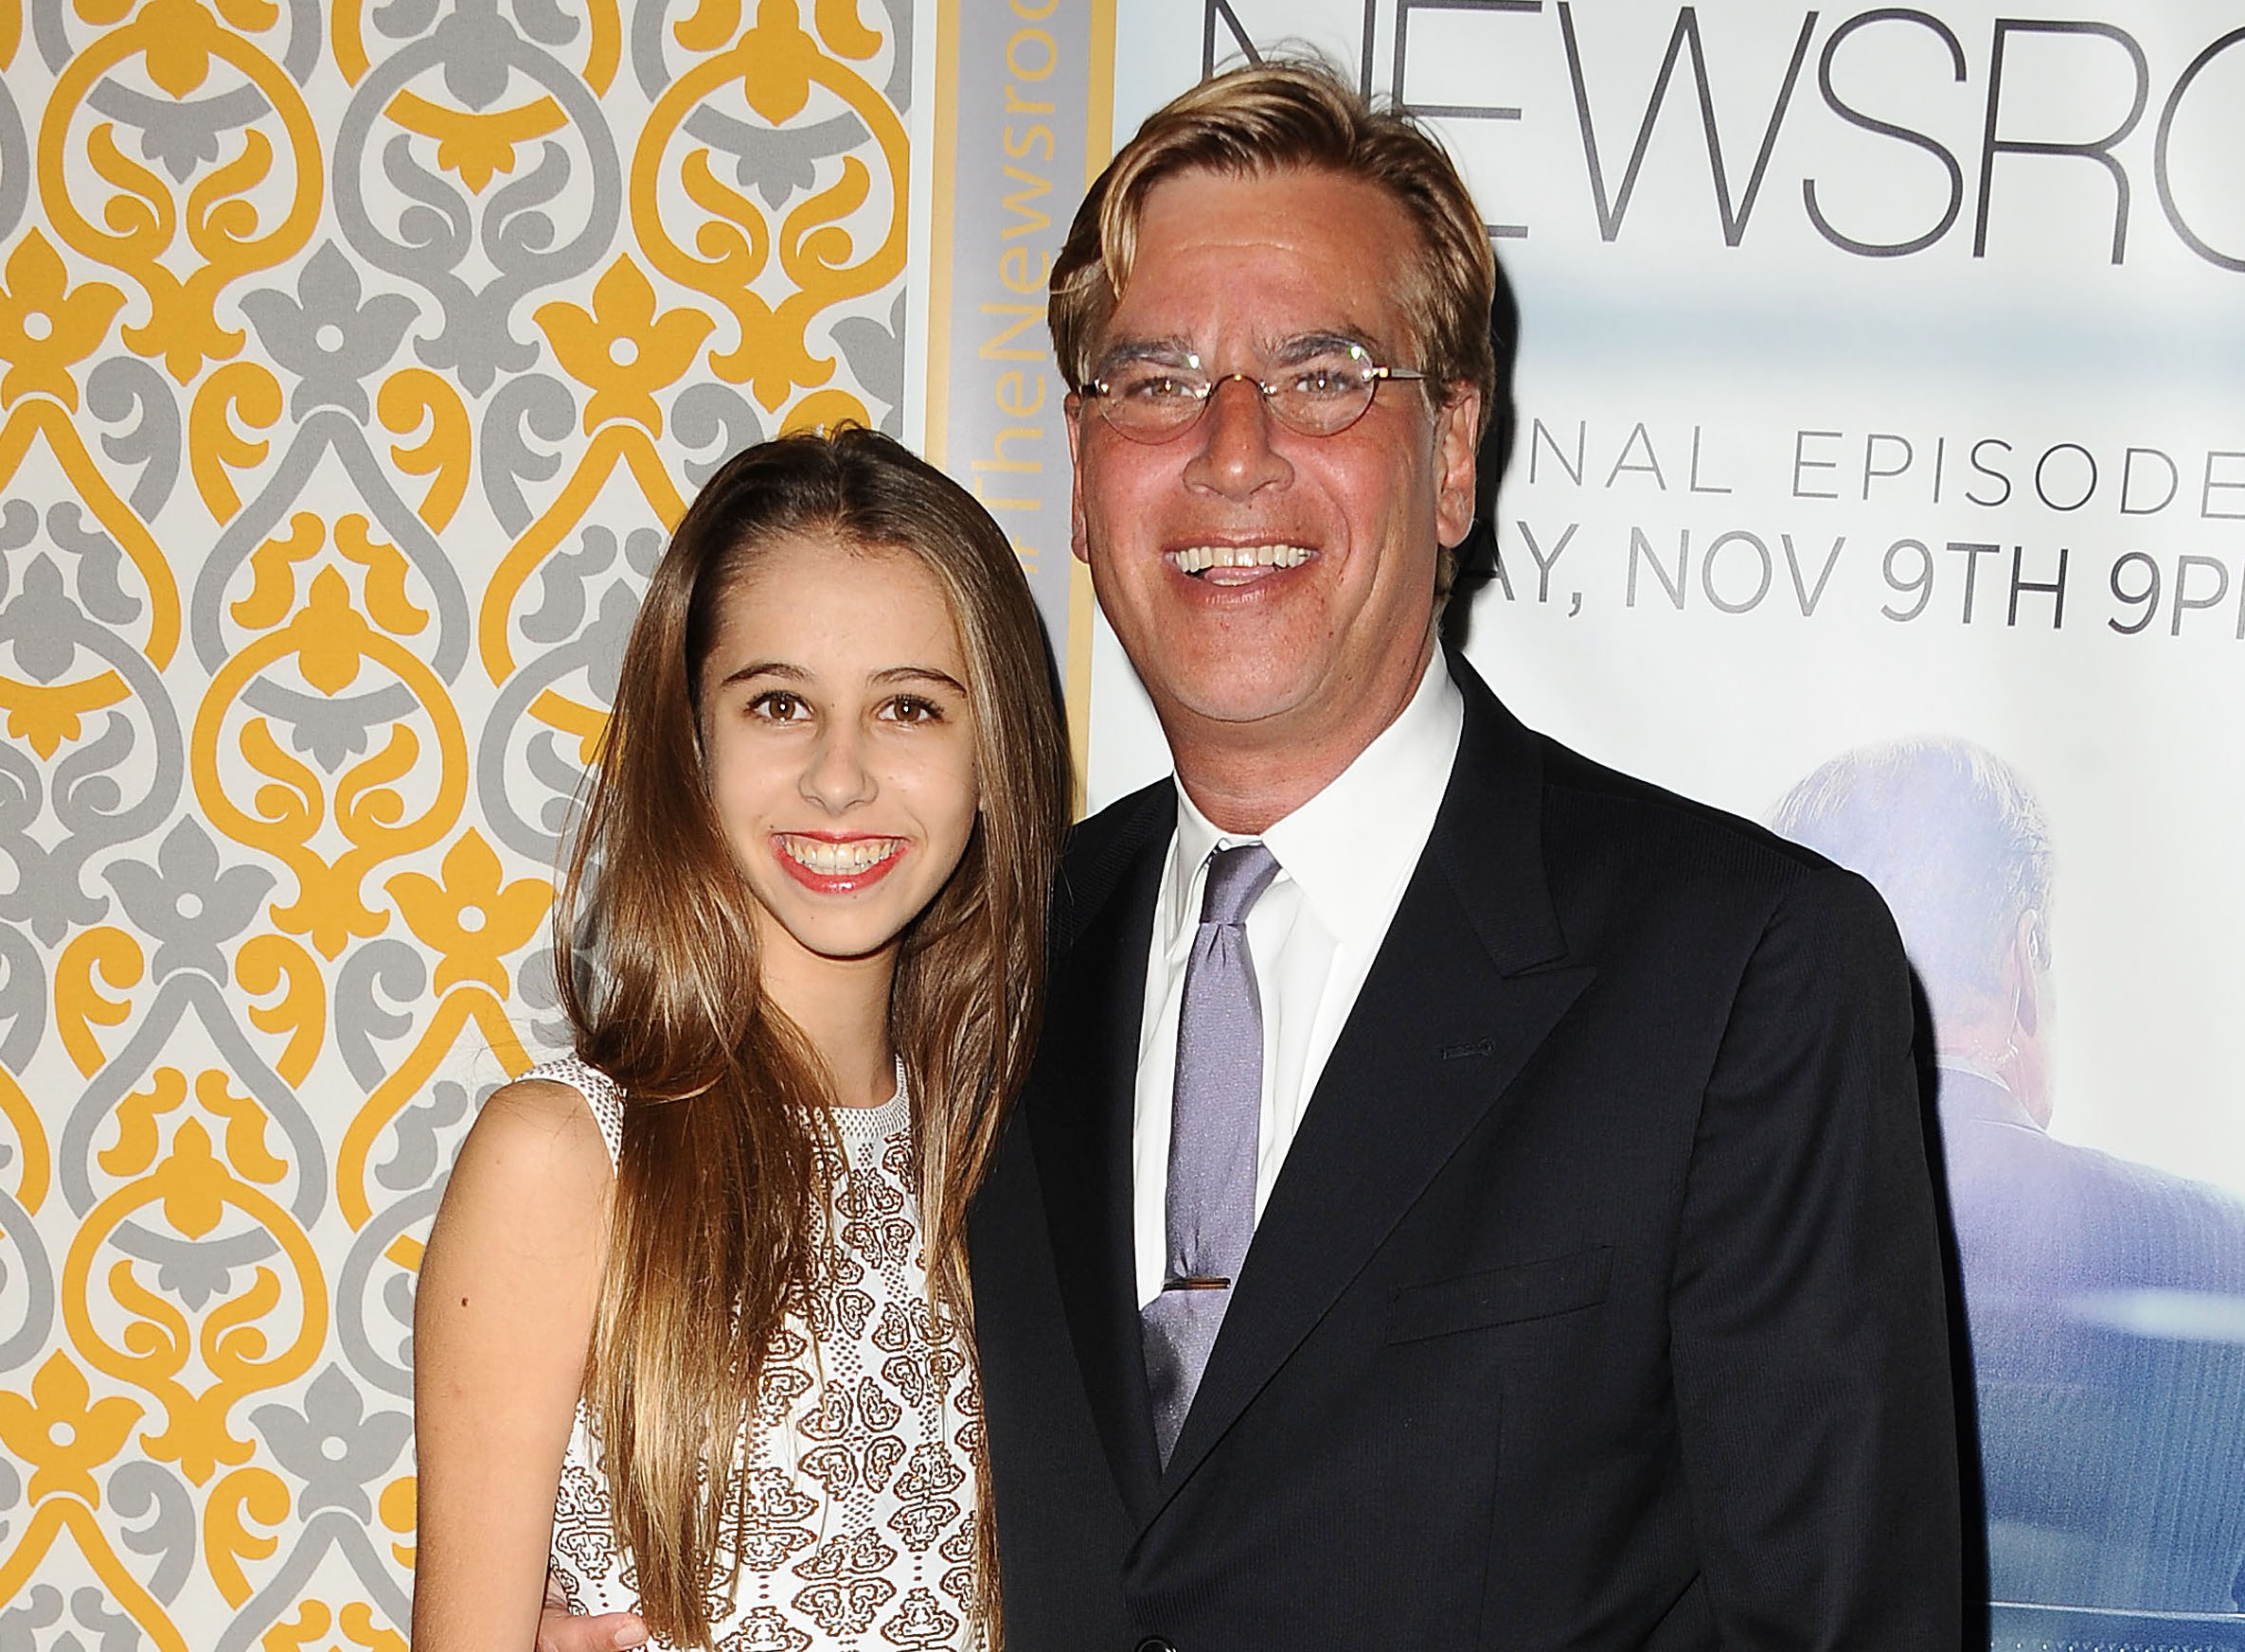 Aaron Sorkin wrote the most heartfelt letter to his 15-year old daughter after the 2016 Election